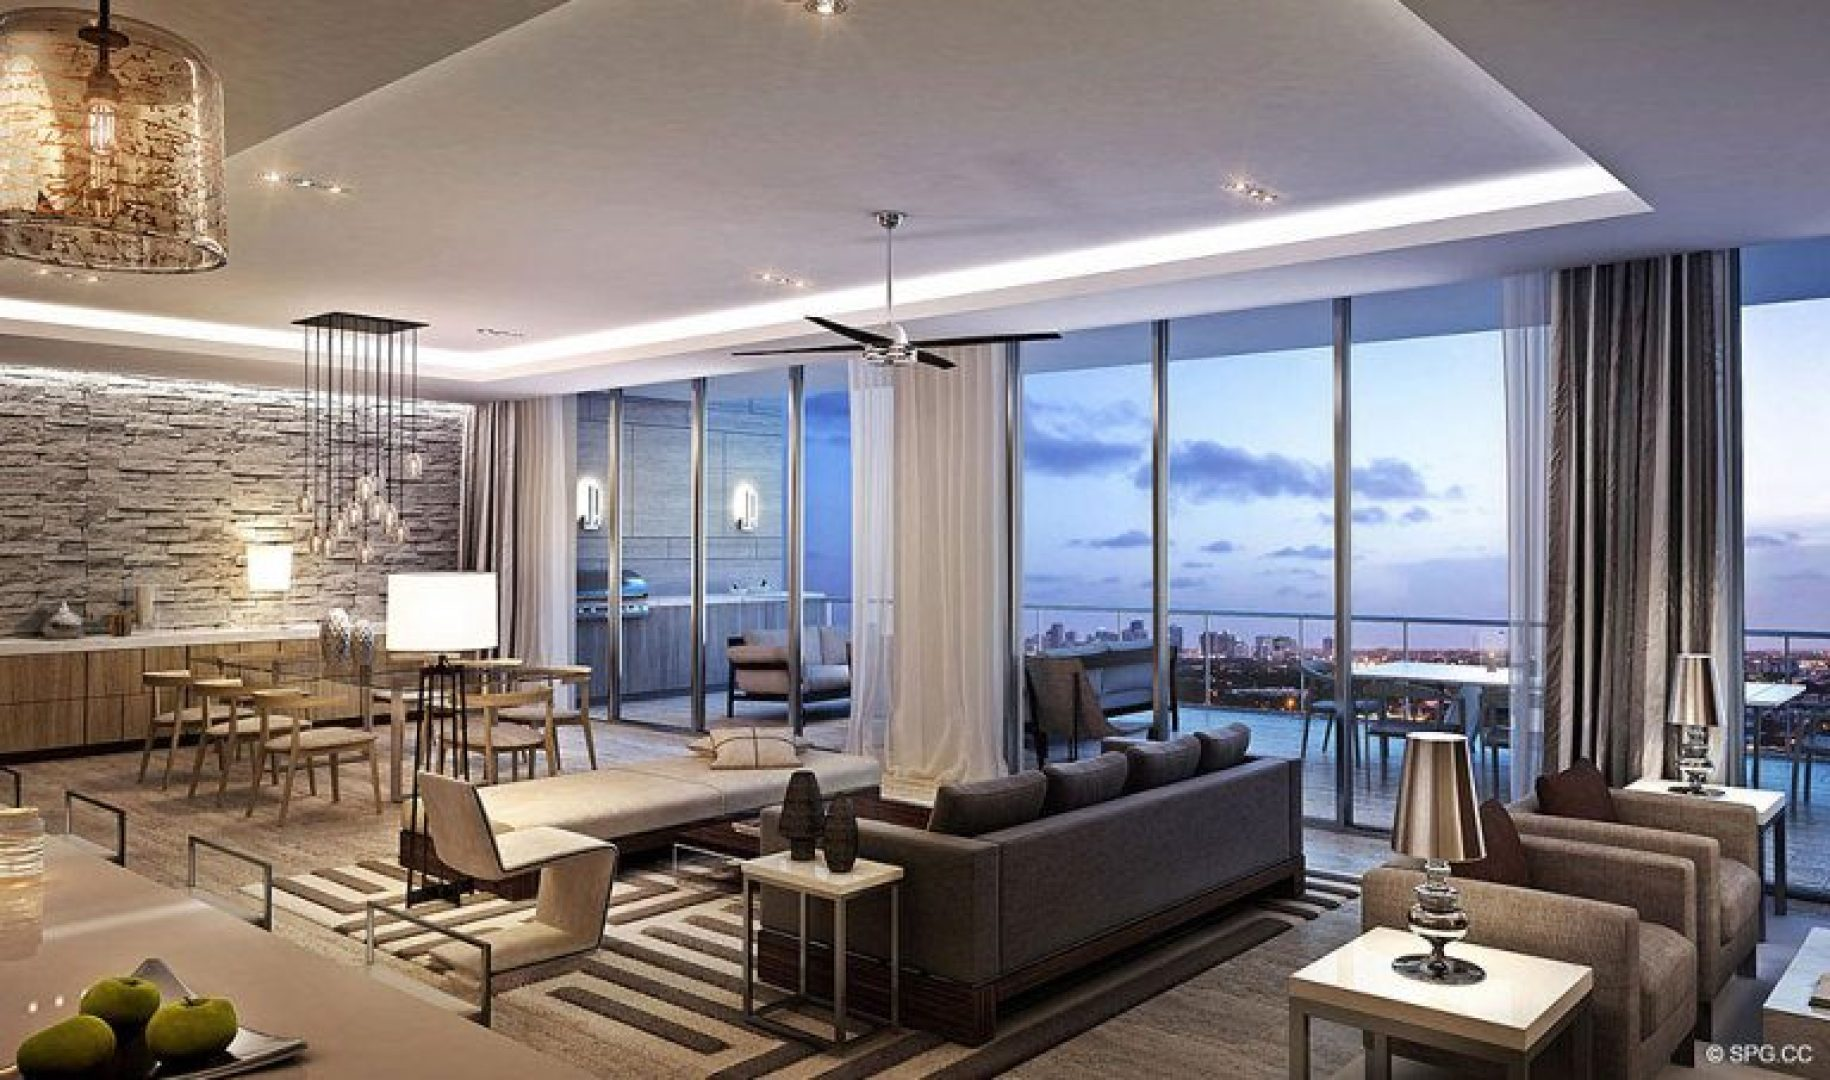 Enjoy Luxury Living at its Finest at Riva, Luxury Waterfront Condos in Fort Lauderdale, Florida 33304.